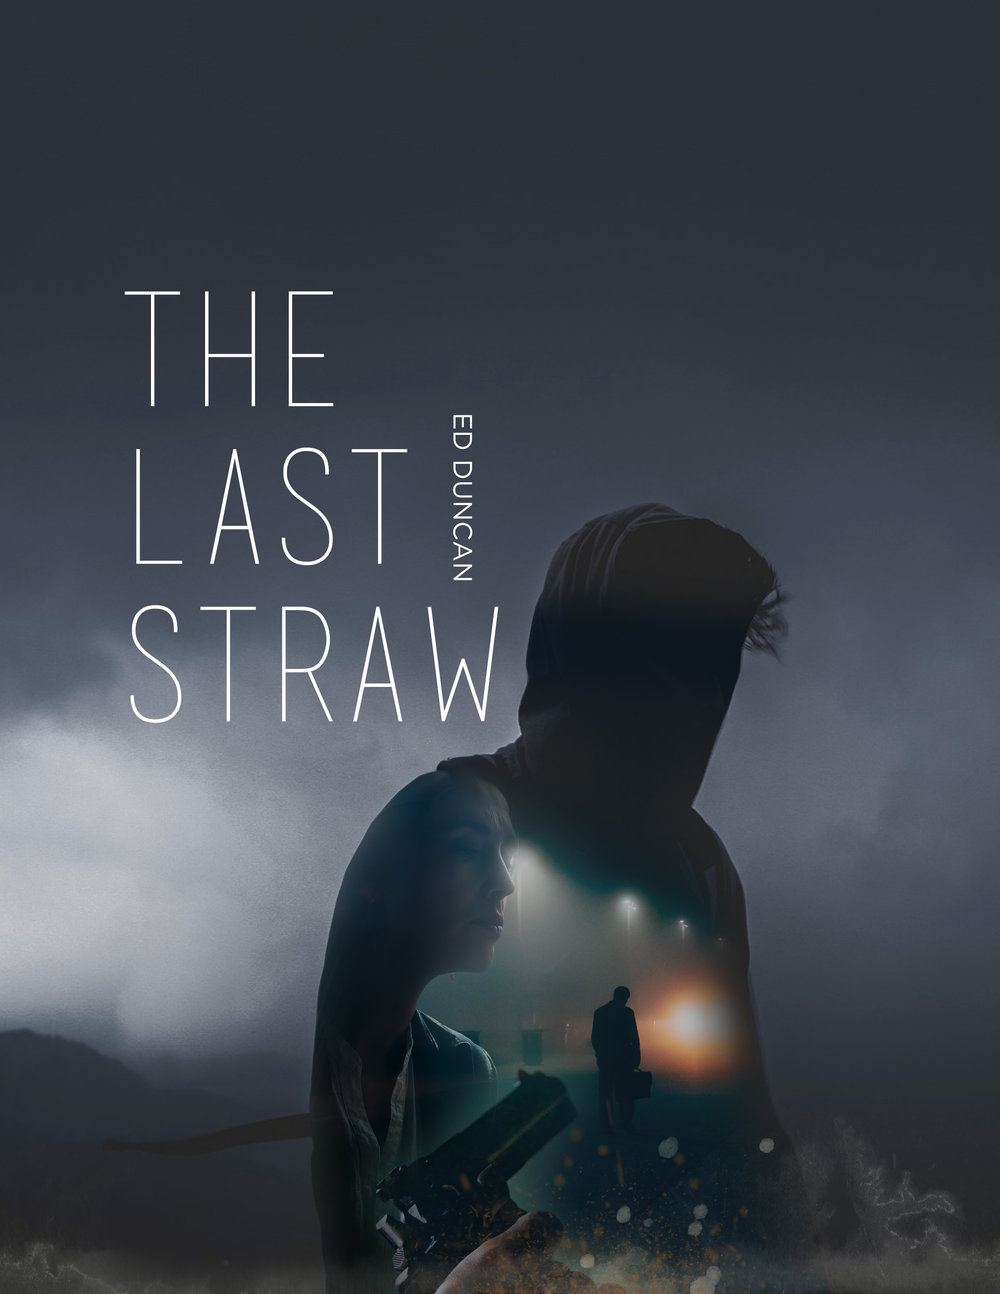 THE LAST STRAW POSTER 3.jpg